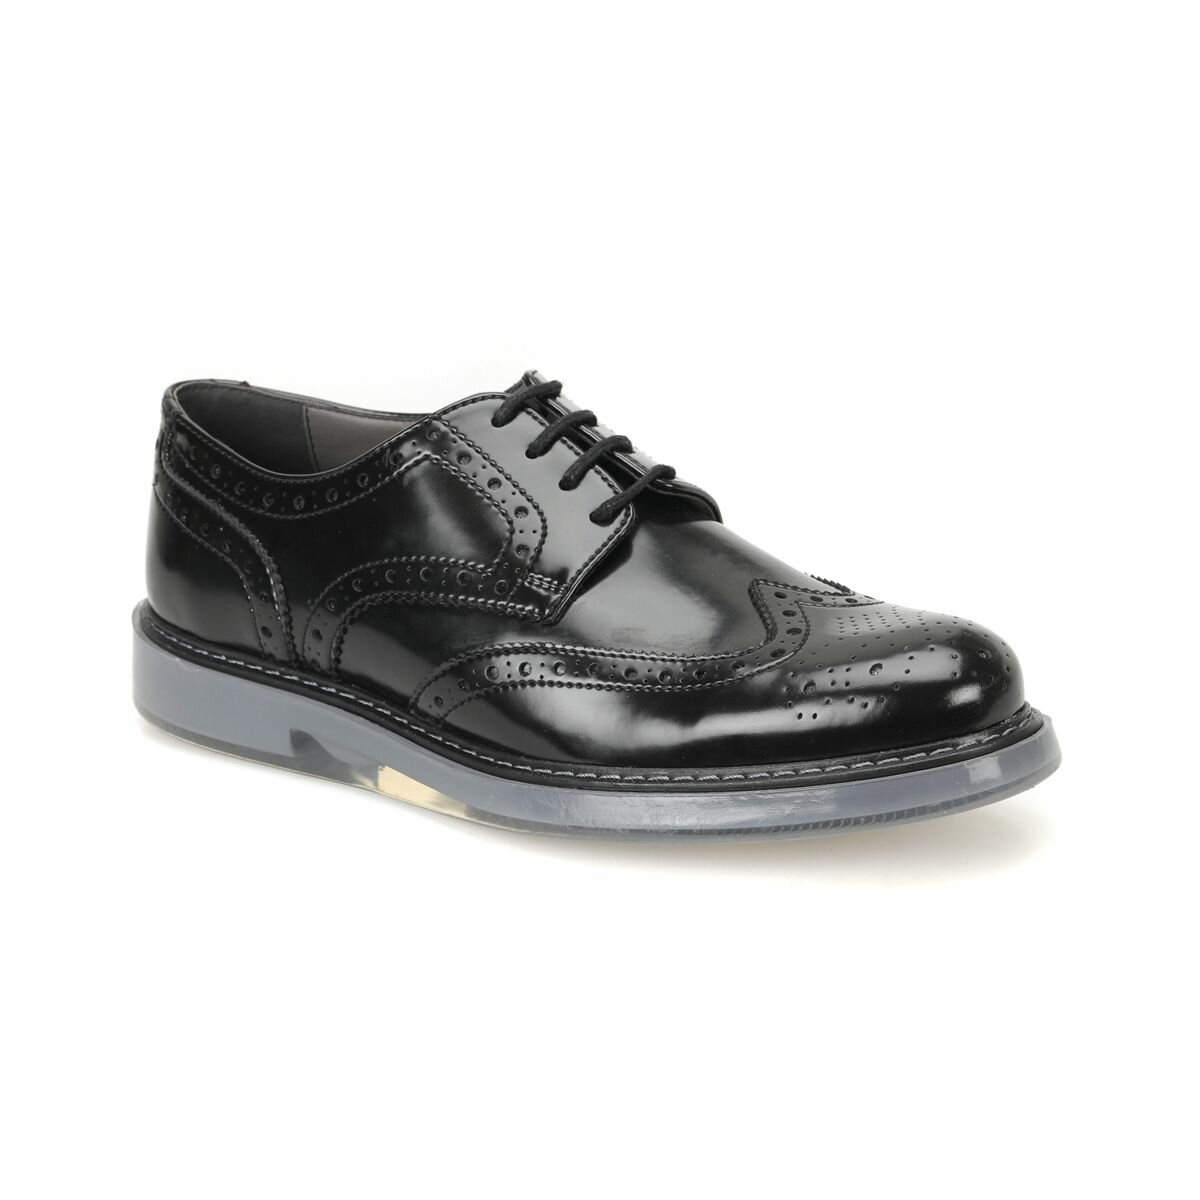 FLO 51535-2 Black Men 'S Classic Shoes JJ-Stiller